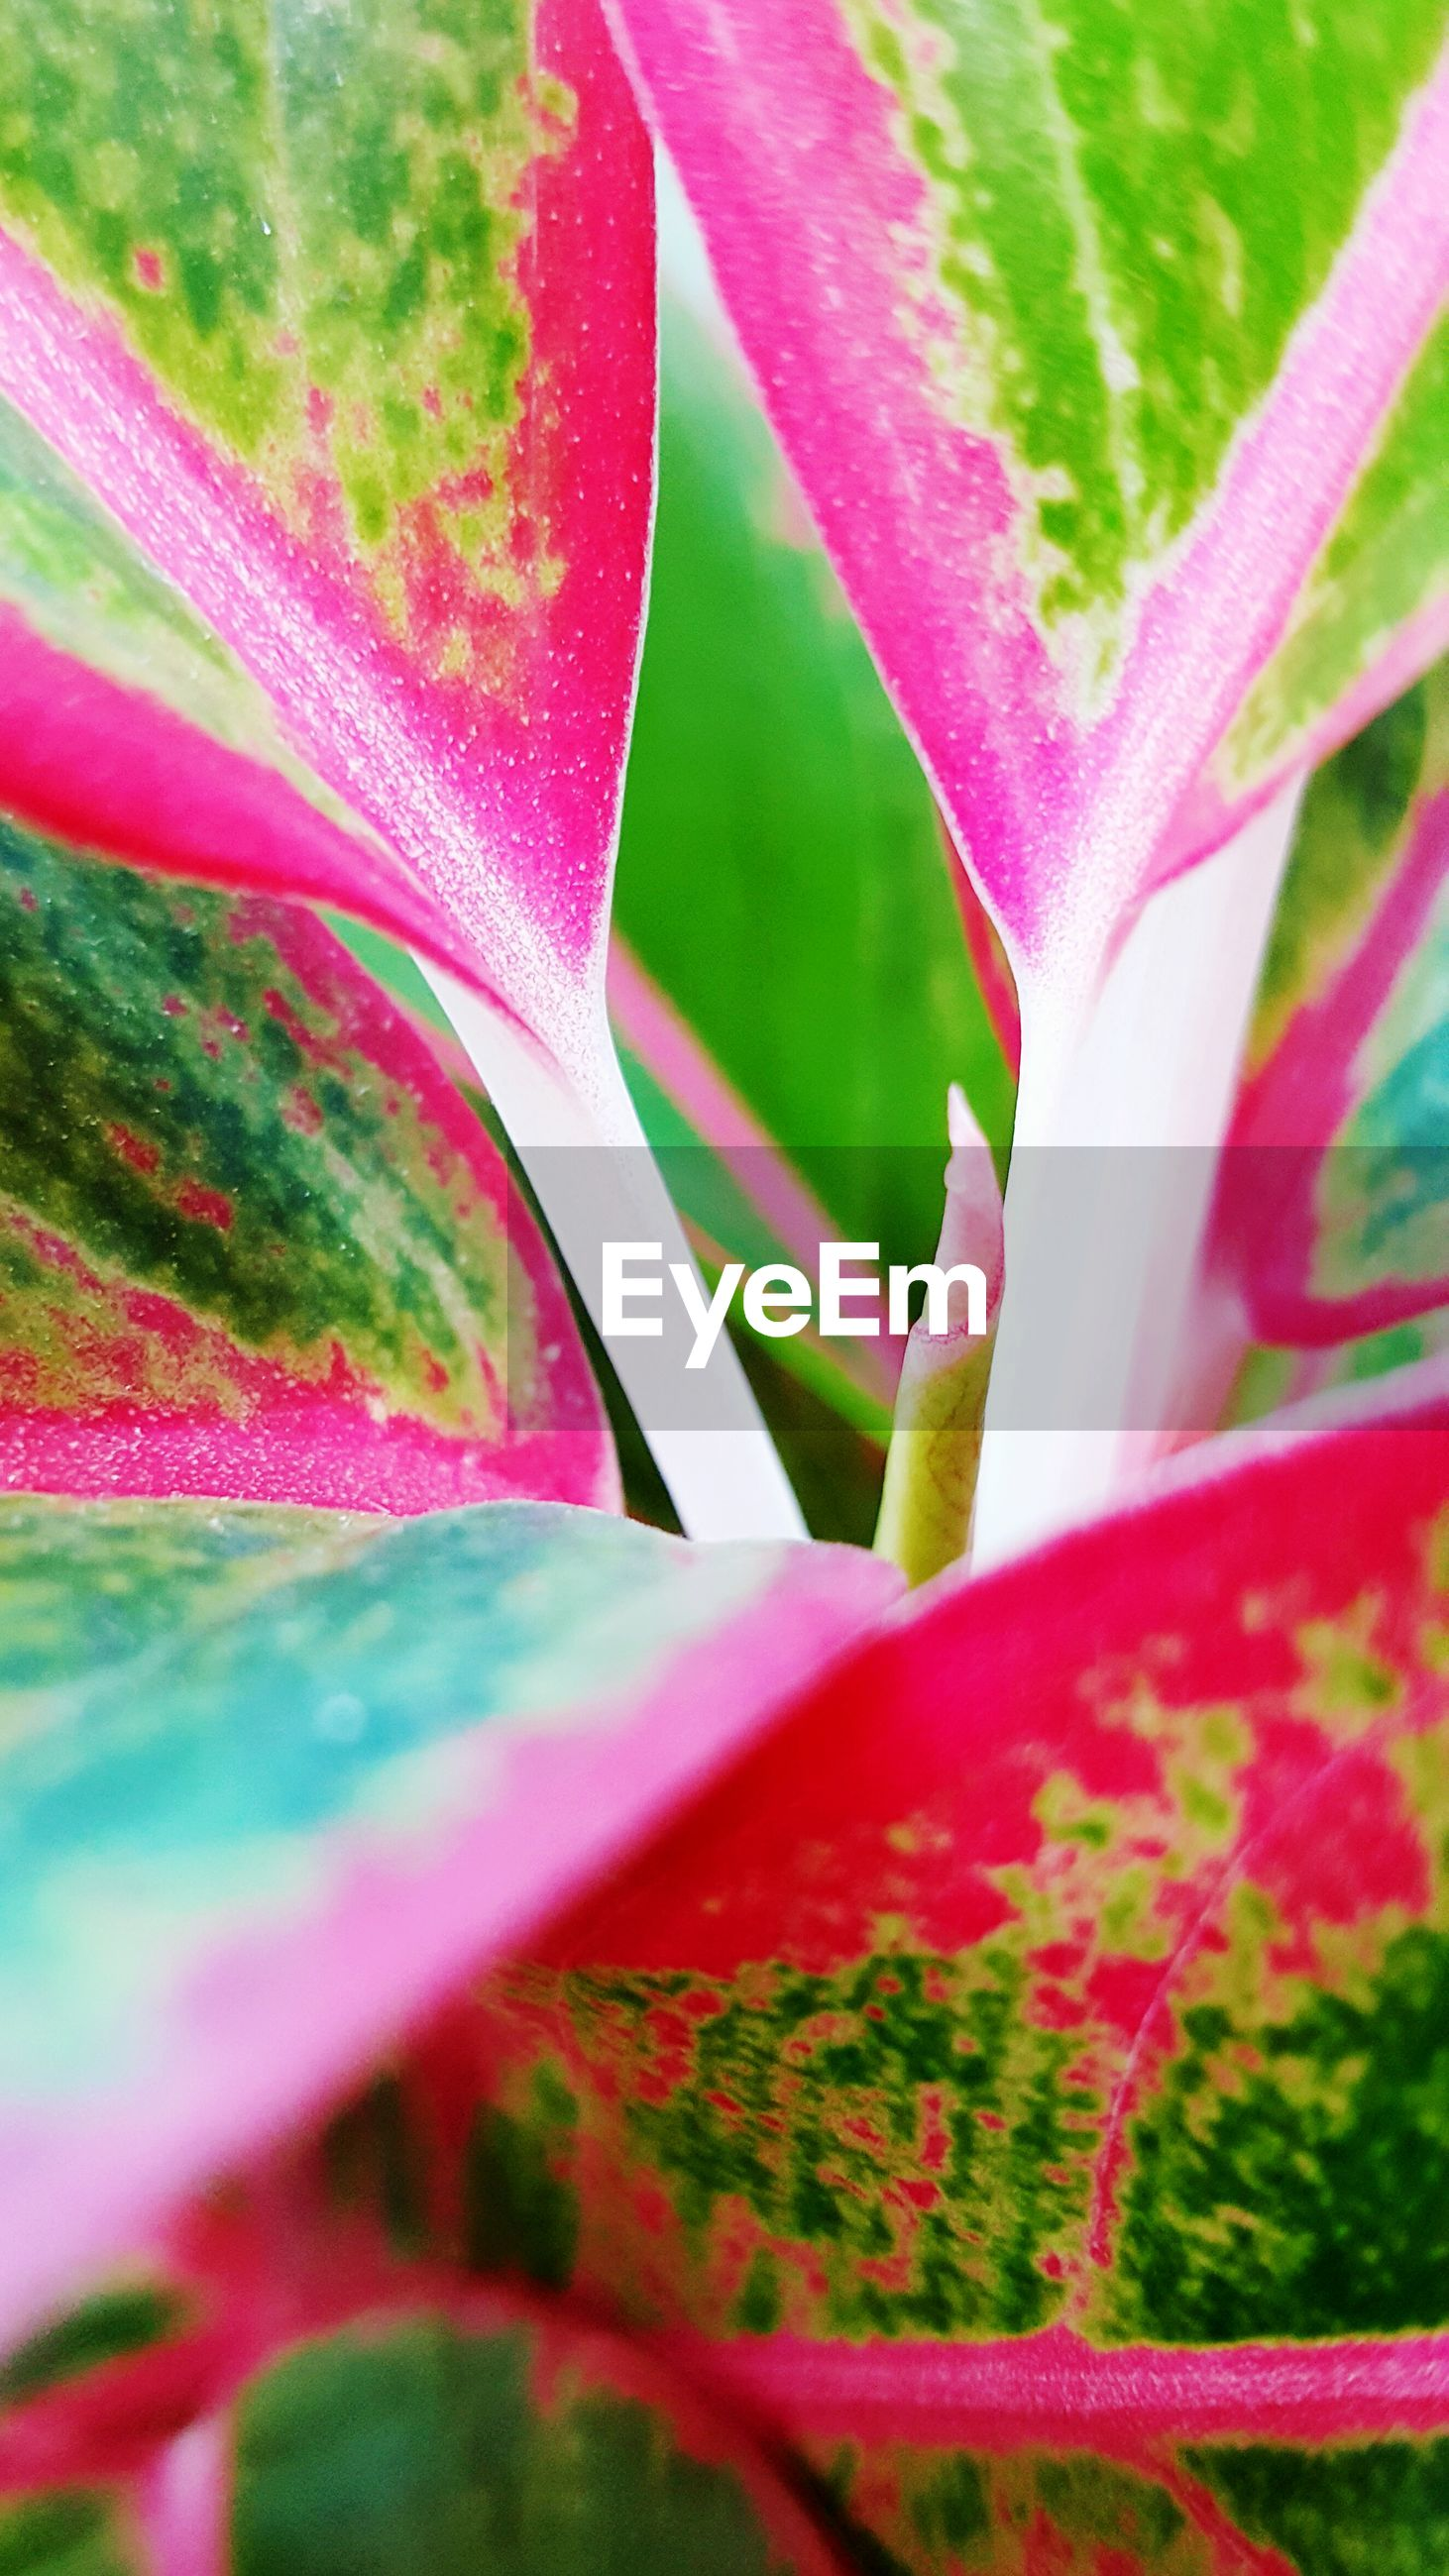 growth, leaf, close-up, green color, beauty in nature, full frame, pink color, fragility, plant, backgrounds, nature, flower, freshness, selective focus, red, multi colored, focus on foreground, petal, pattern, natural pattern